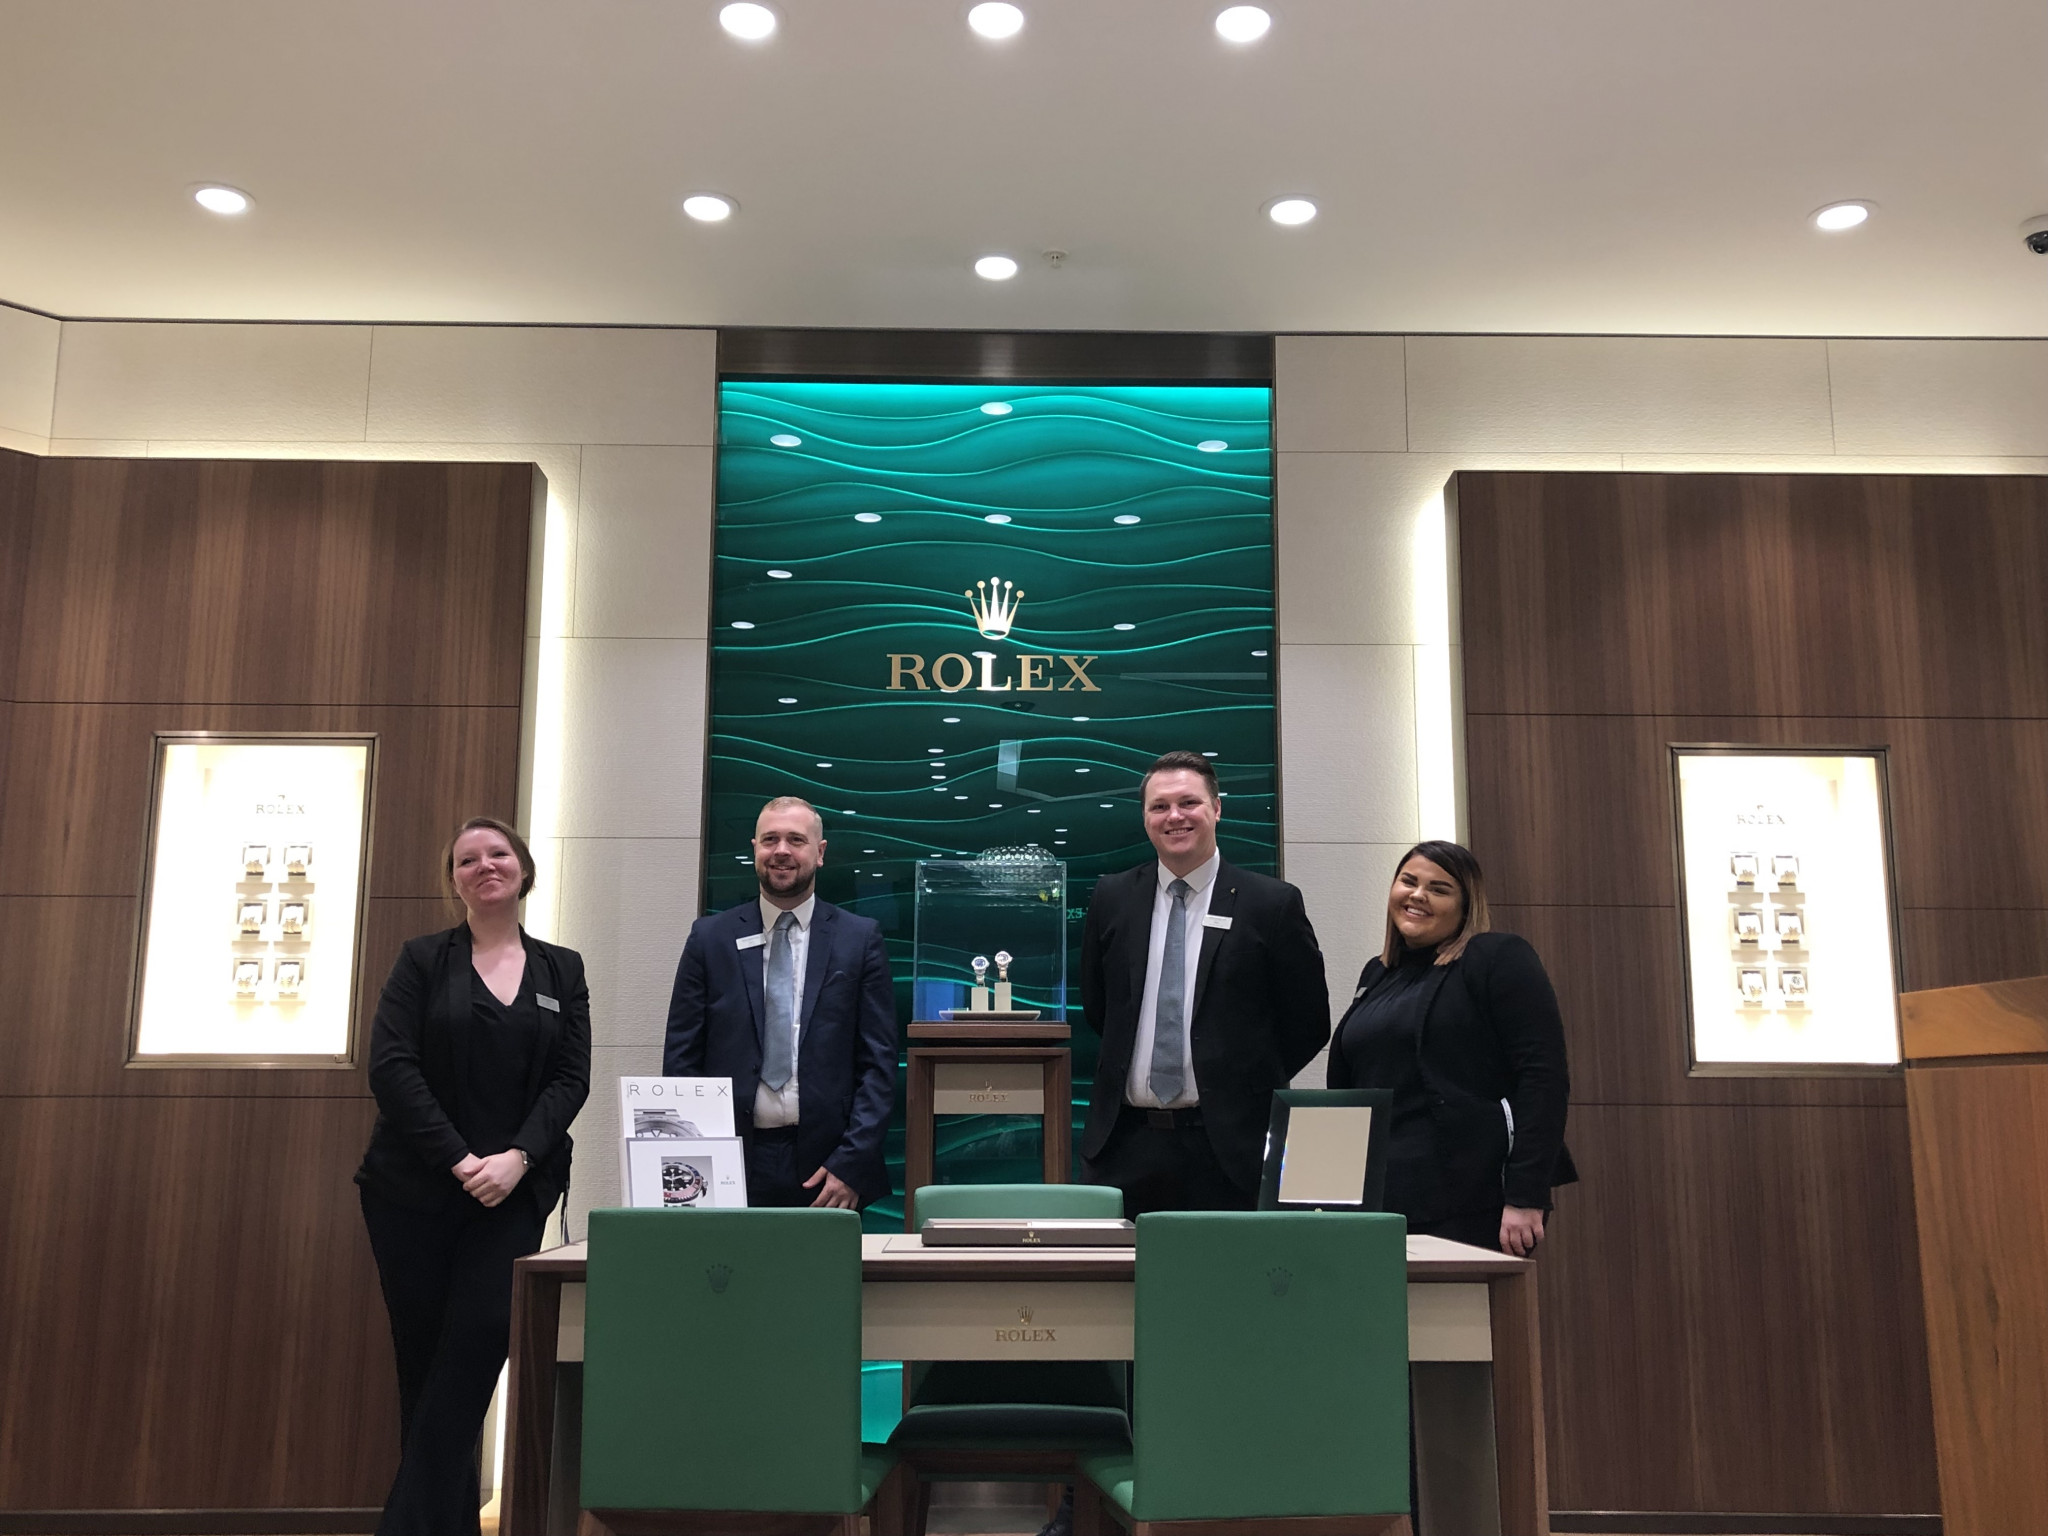 GOLDSMITHS UNVEILS NEW AND IMPROVED CABOT CIRCUS SHOWROOM FEATURING LUXURY BRANDS